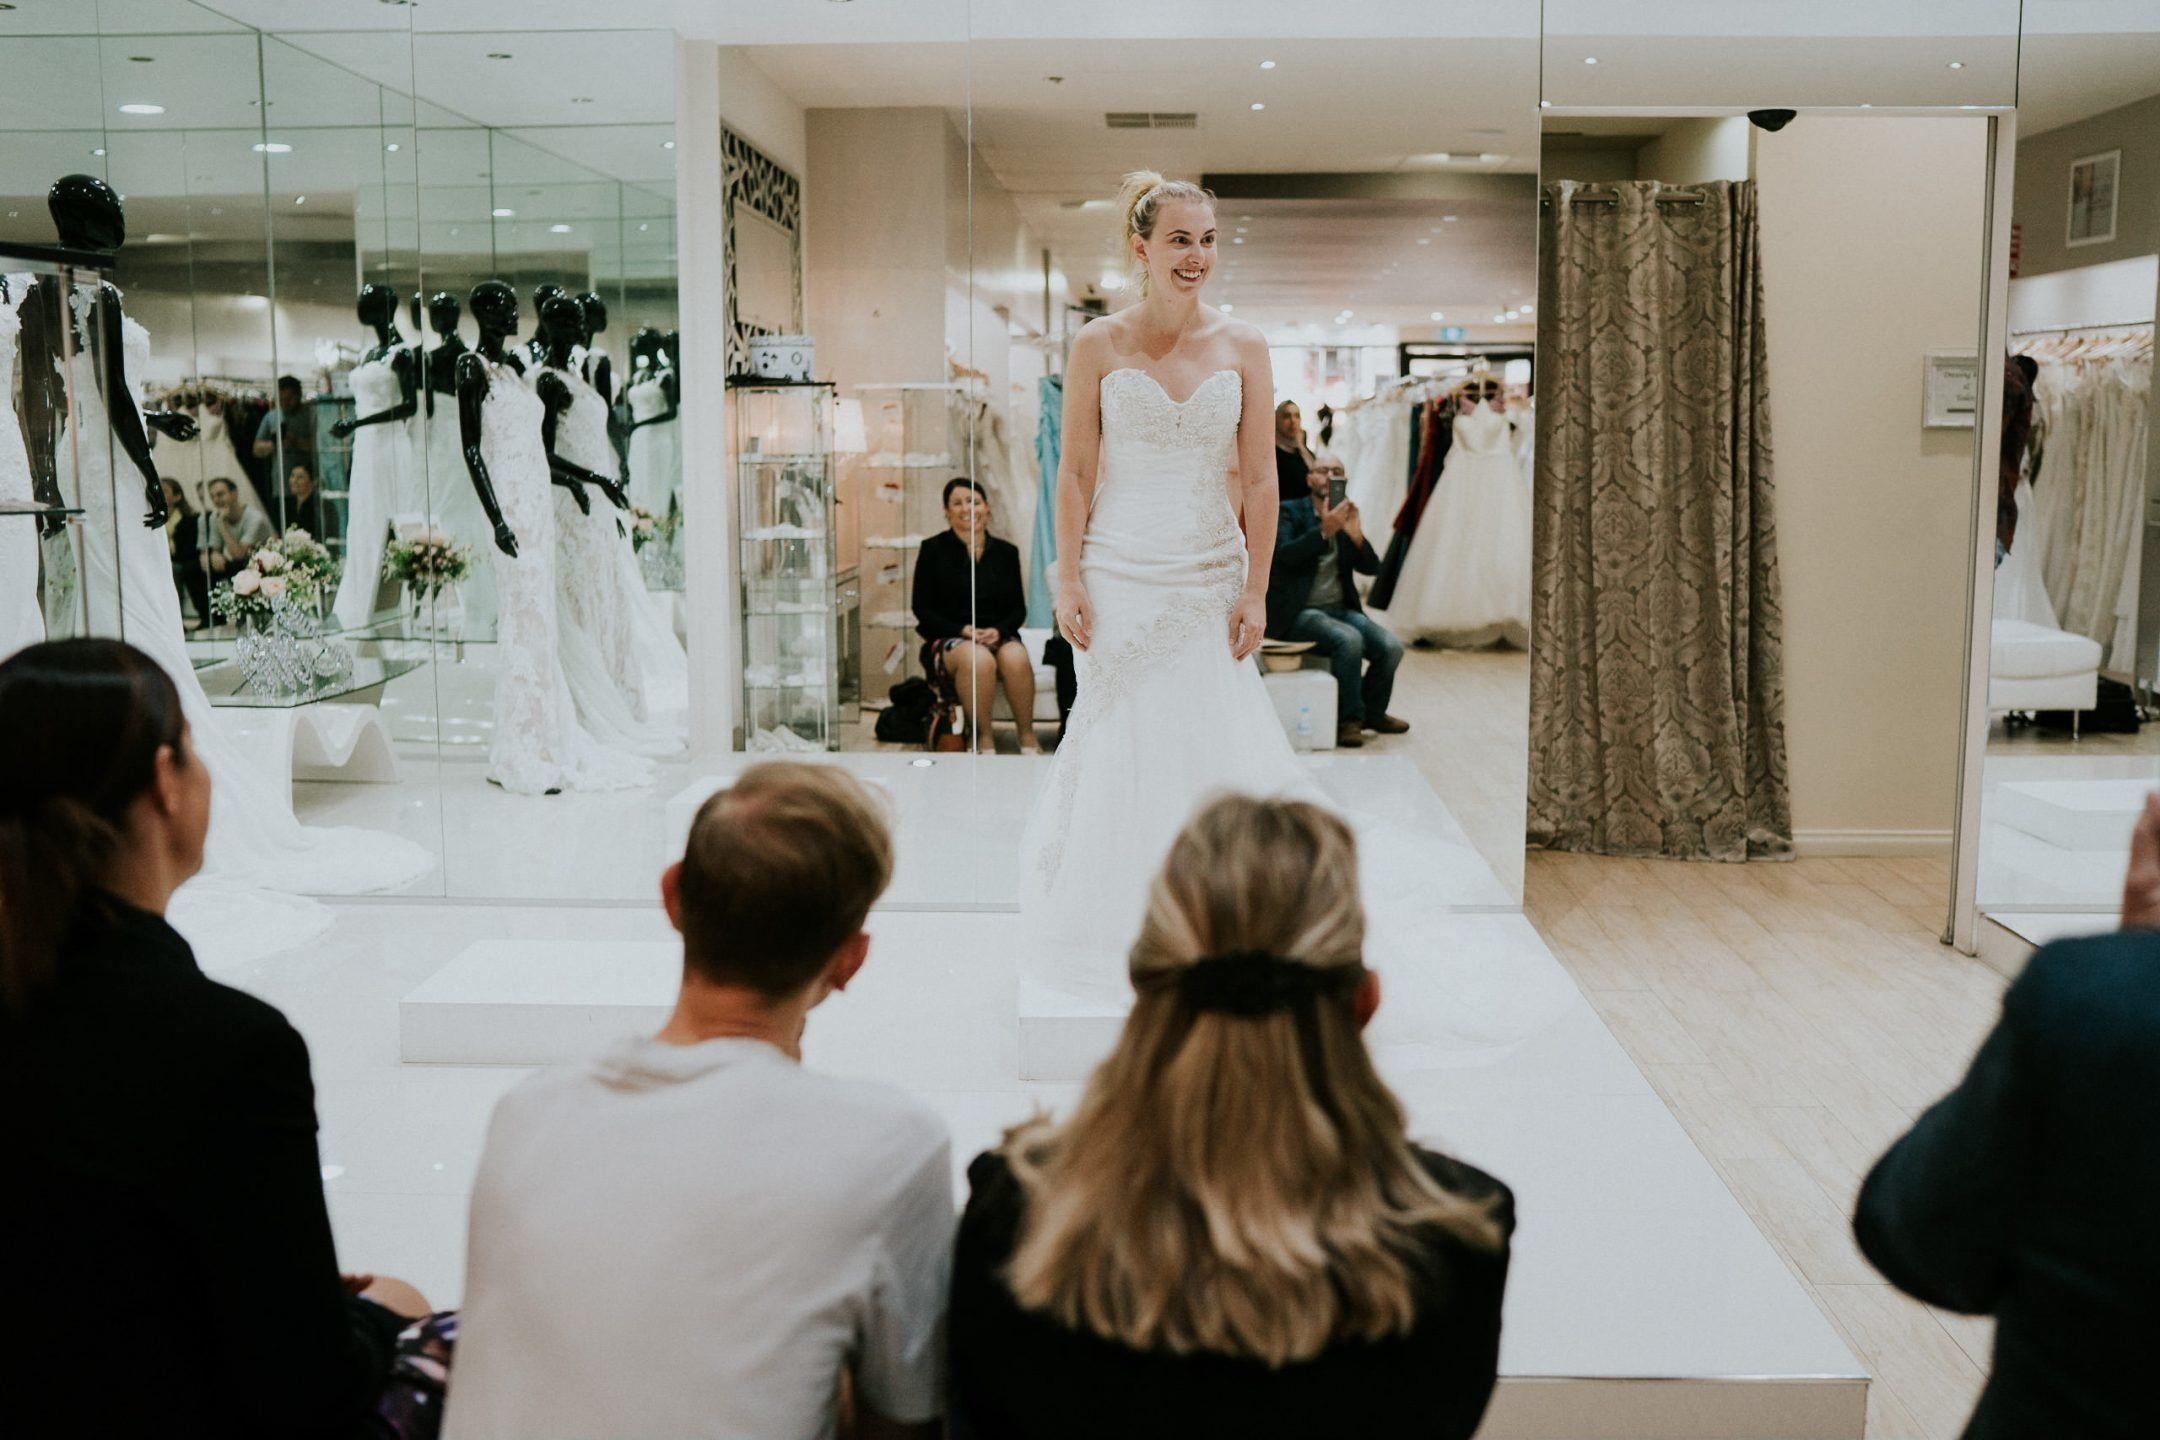 Steph Agnew smiles brightly as she wears a white strapless gown on a small platform in the bridal shop. In the foregroun